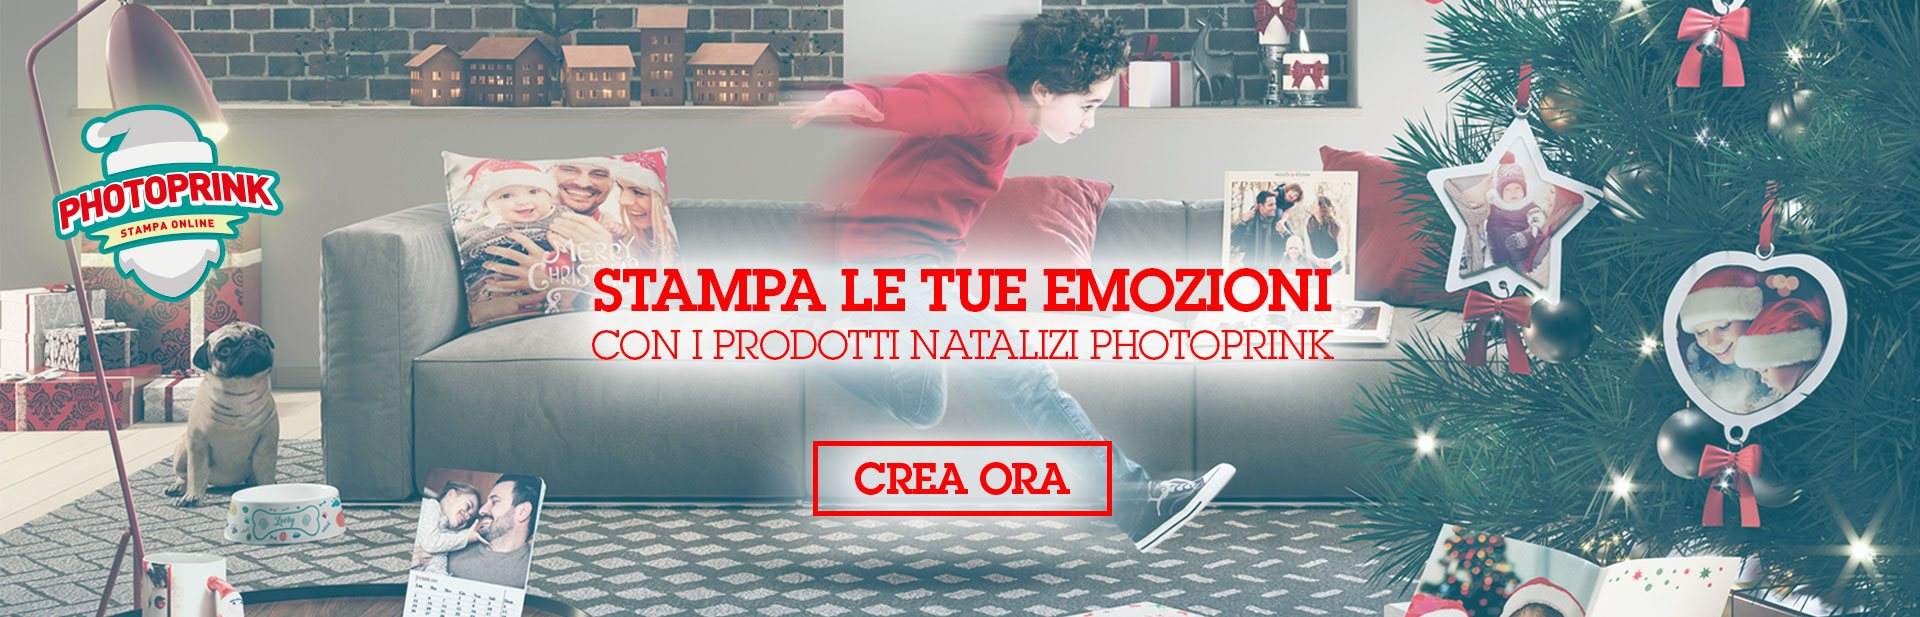 regali-personalizzati-stampa-digitale-natale-photoprink-SL